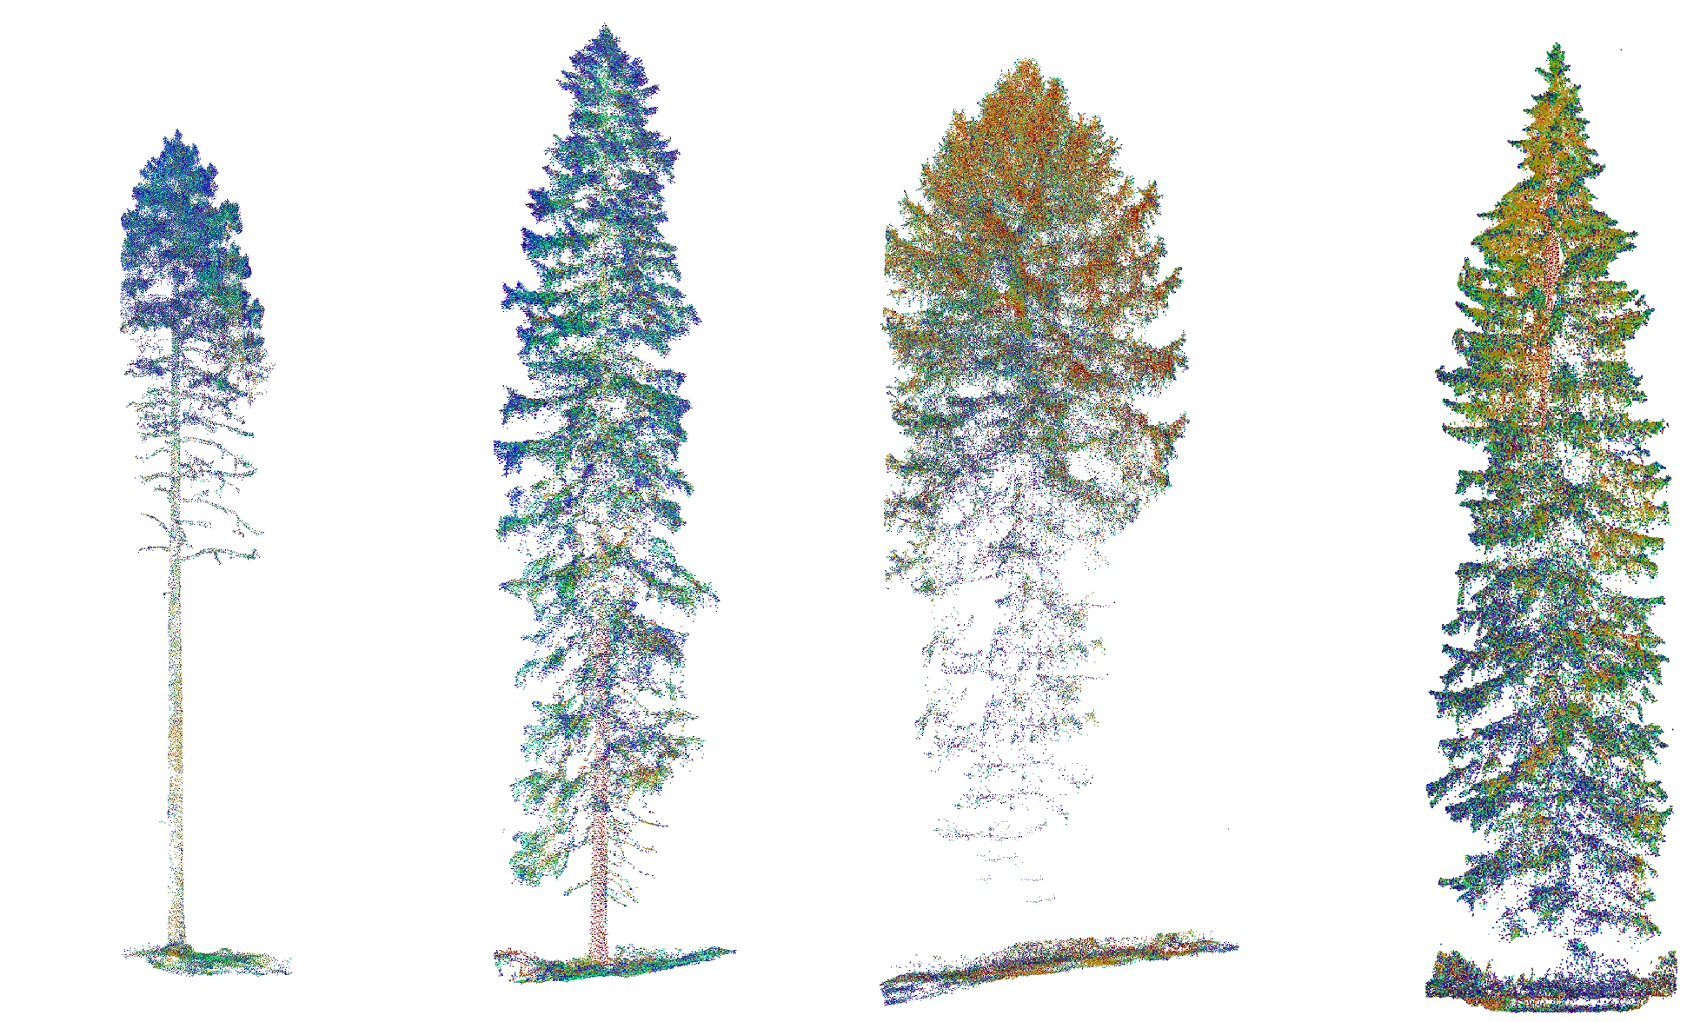 Pointclouds of trees